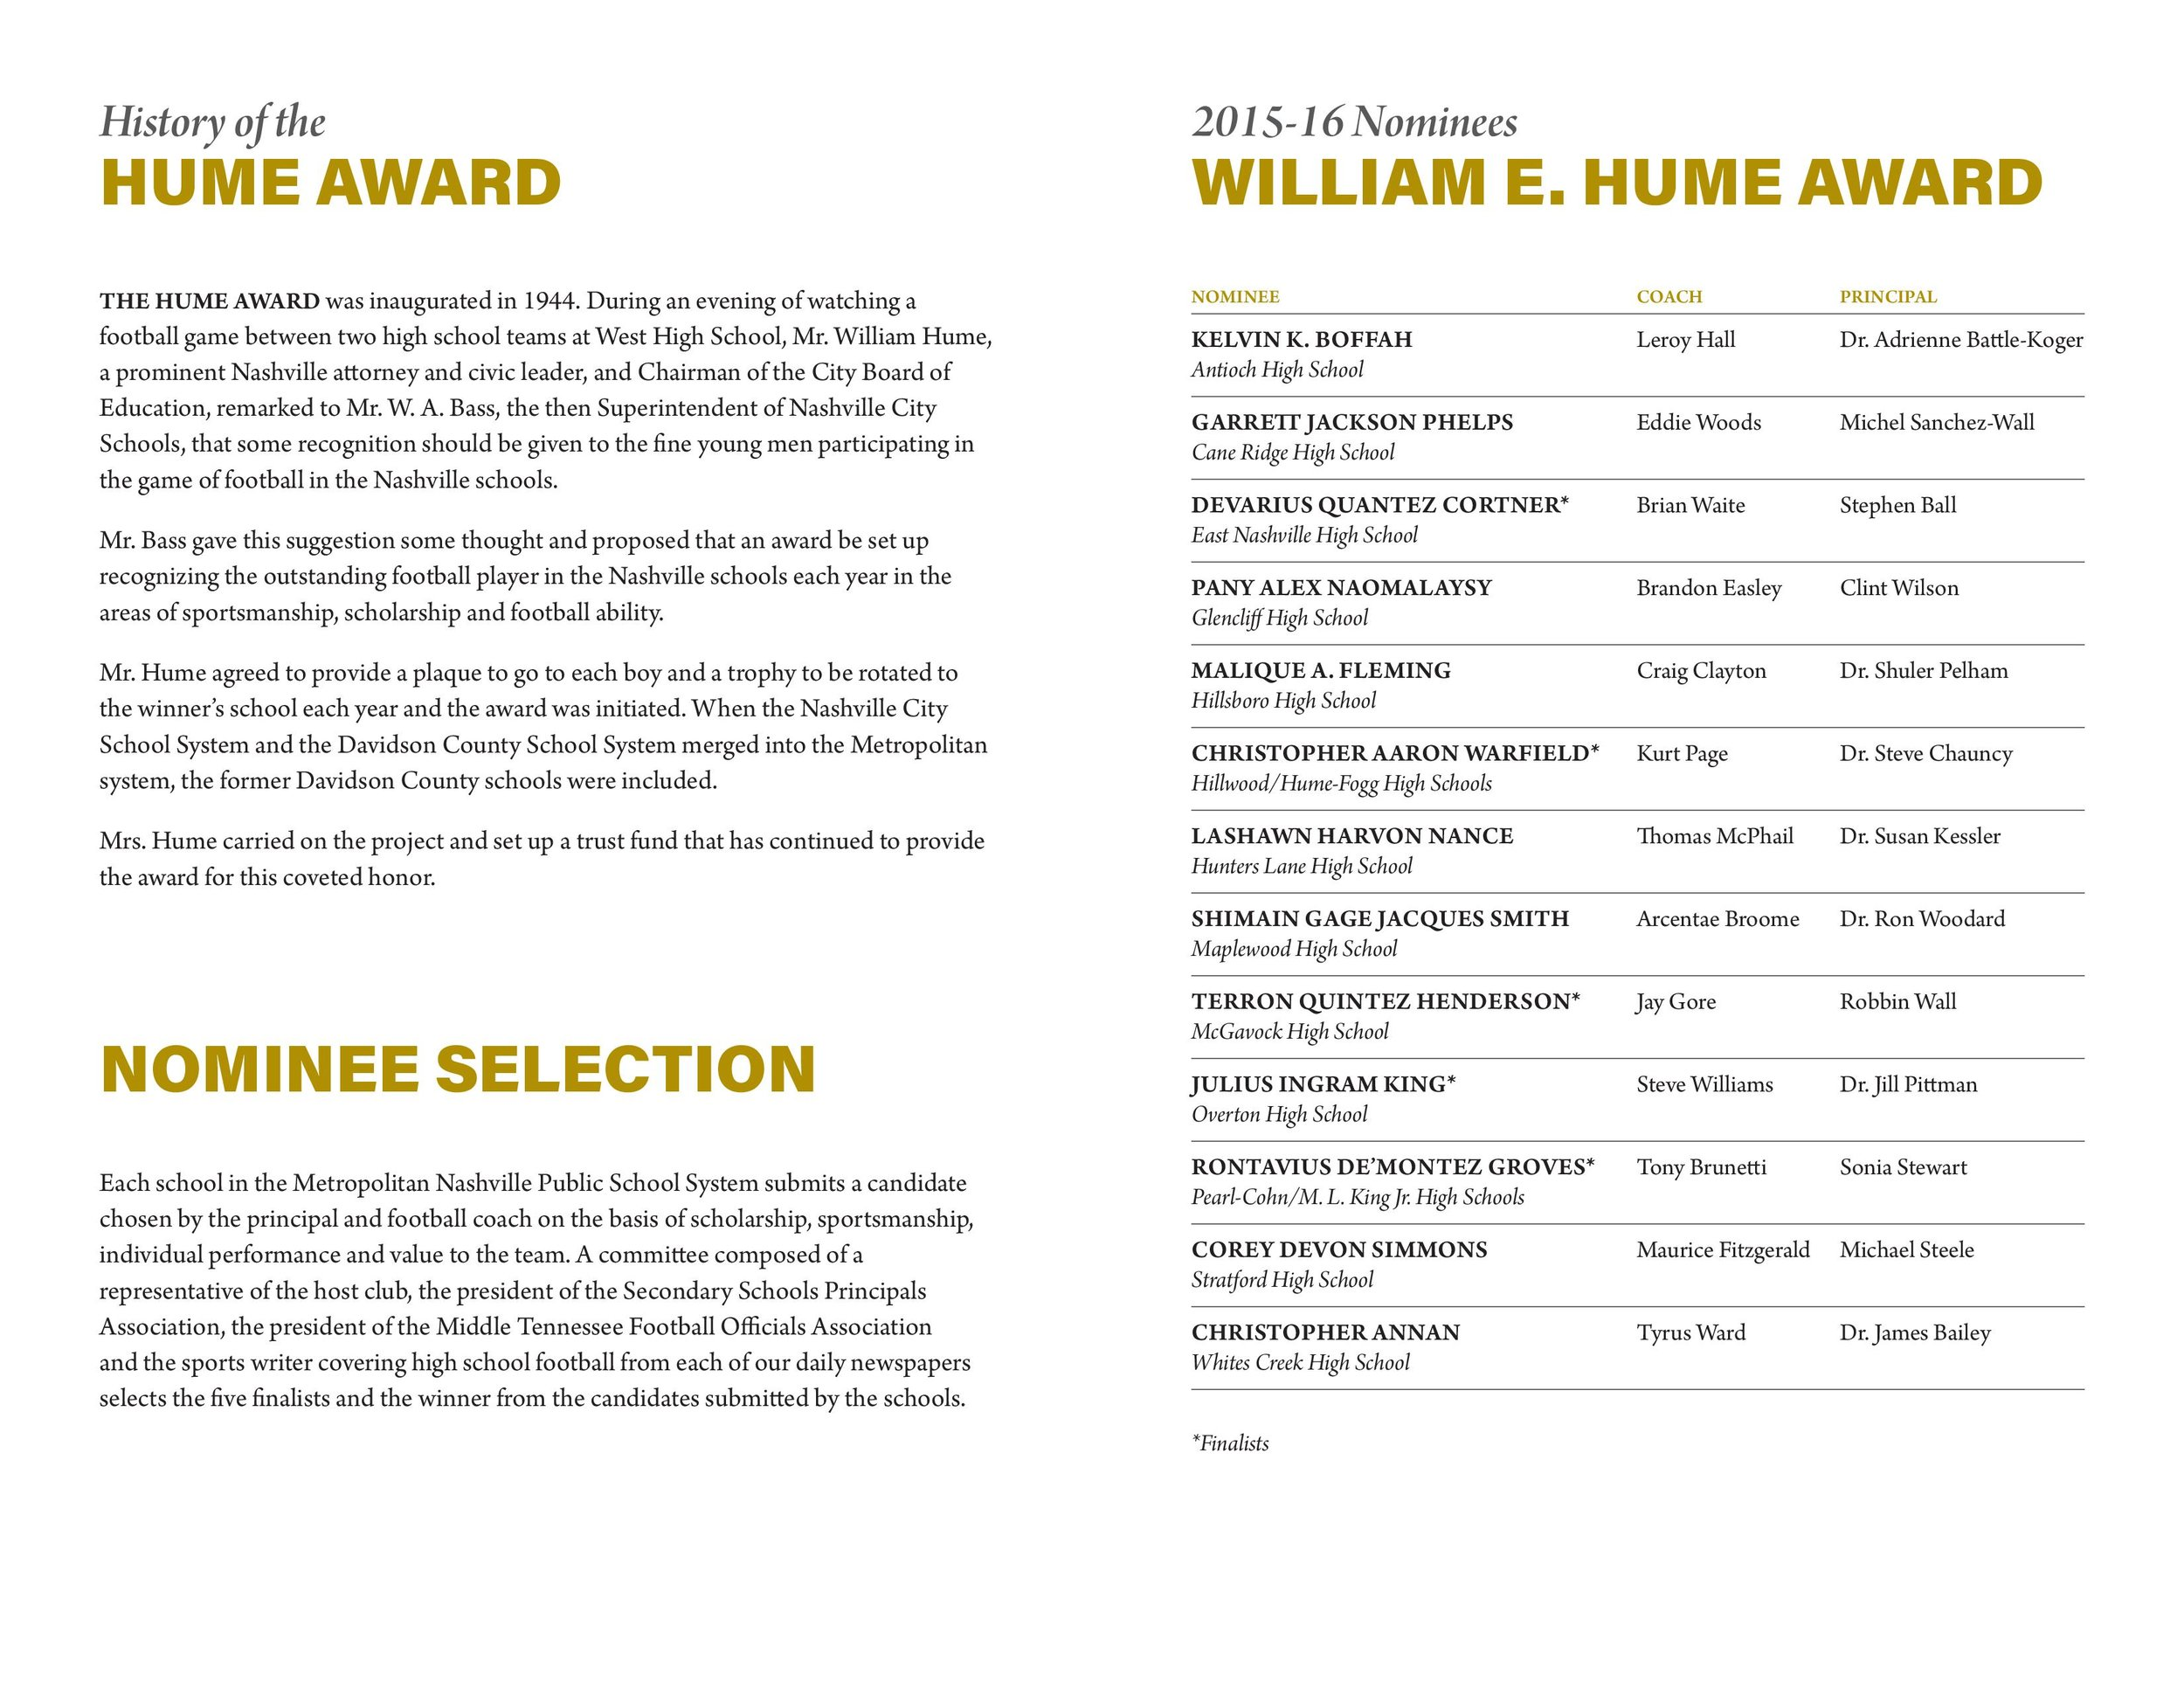 2015-16_Hume-Fogg-Award_Program_12-04-15-page-002